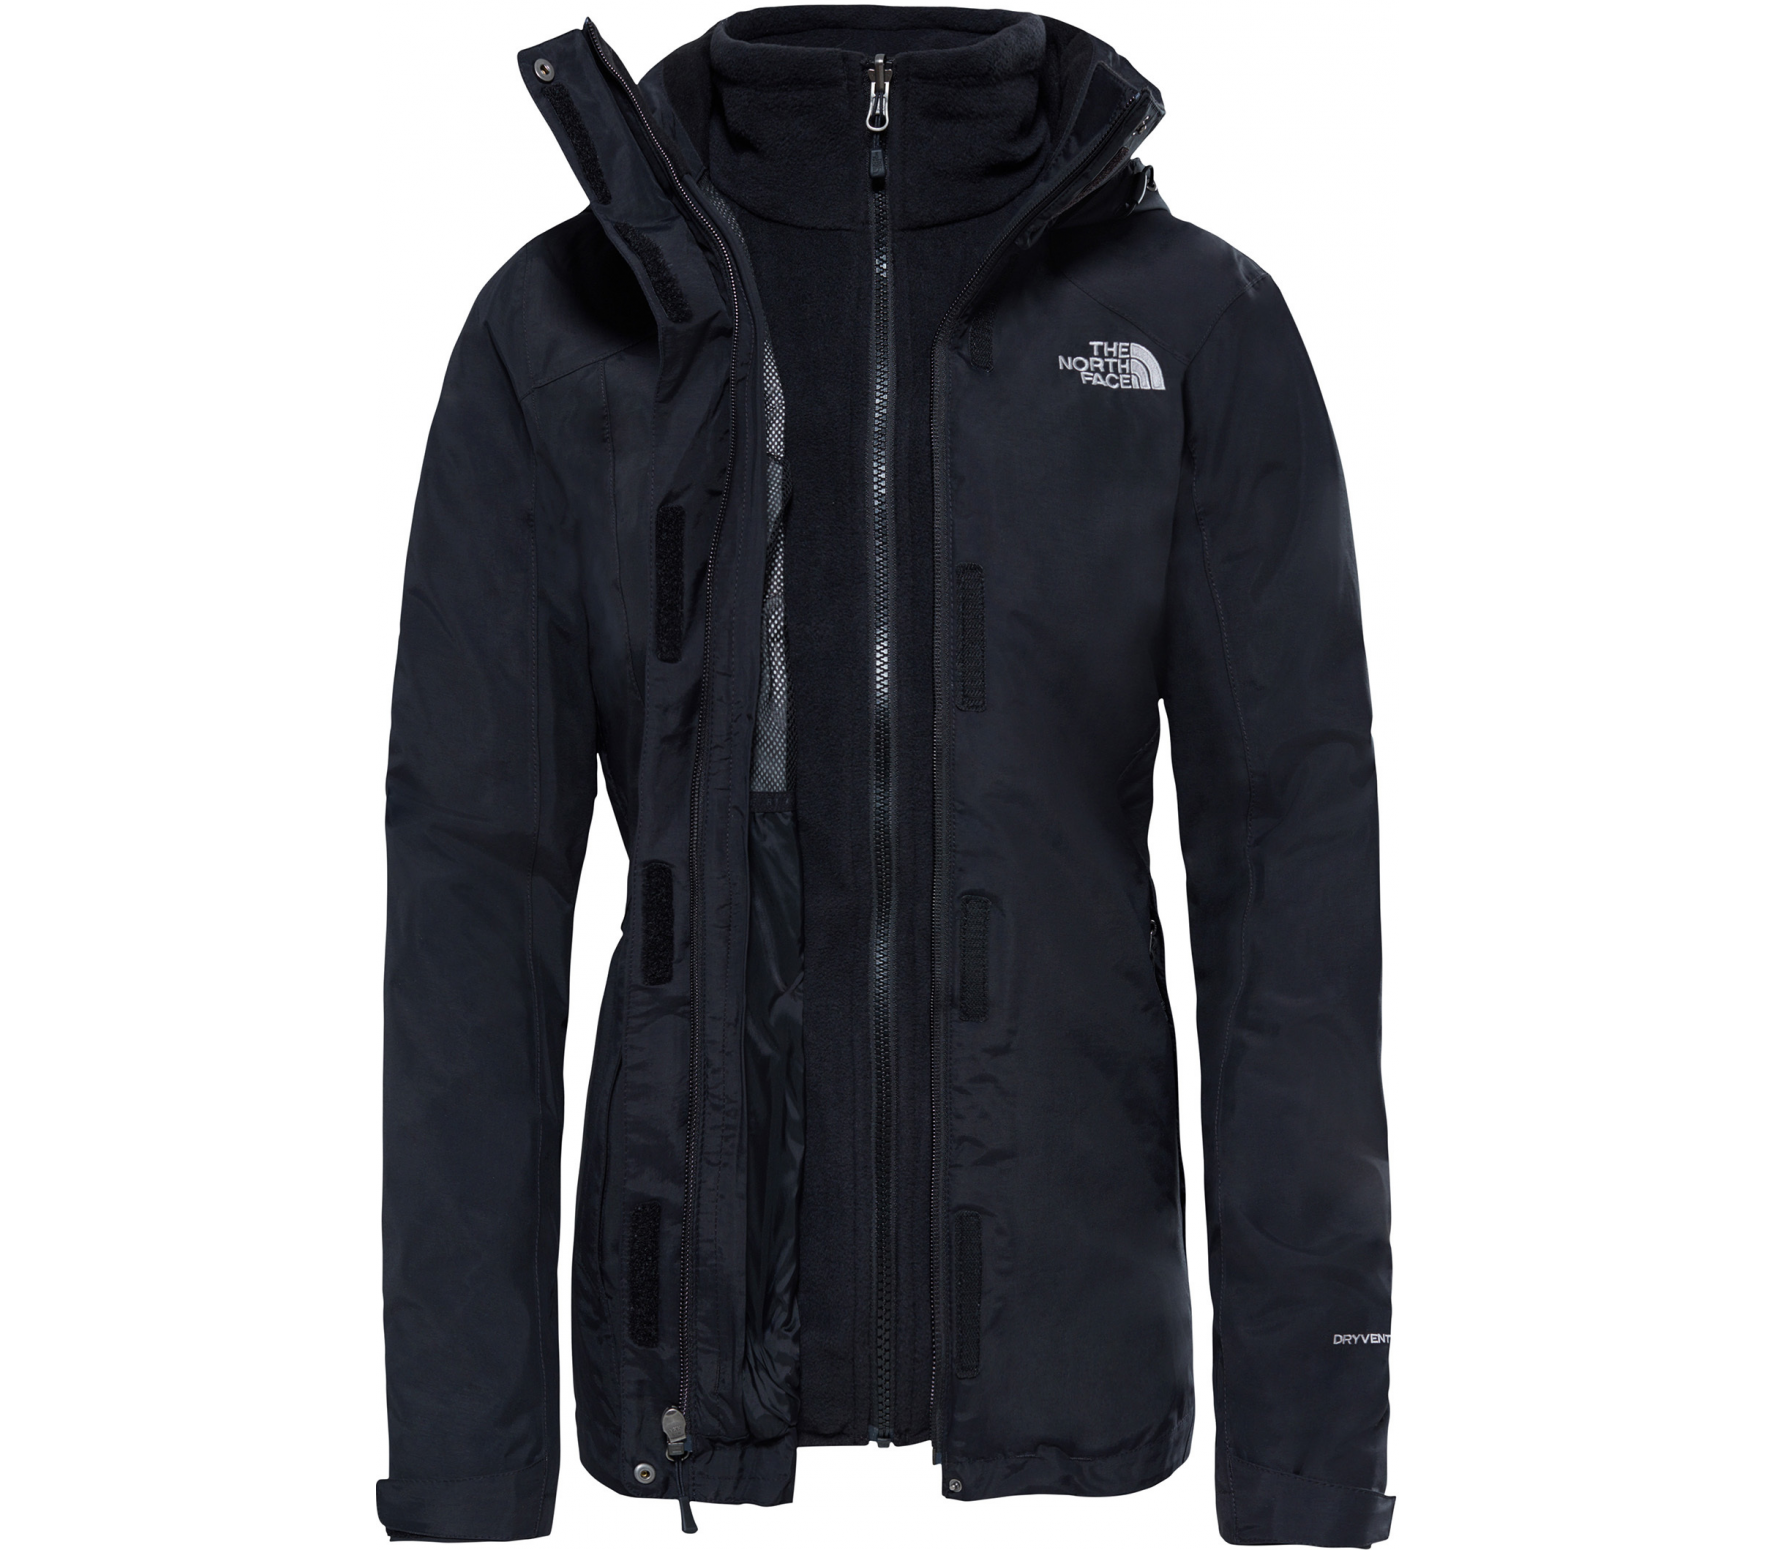 The North Face - Evolution II Triclimate Damen Outdoorjacke (schwarz)